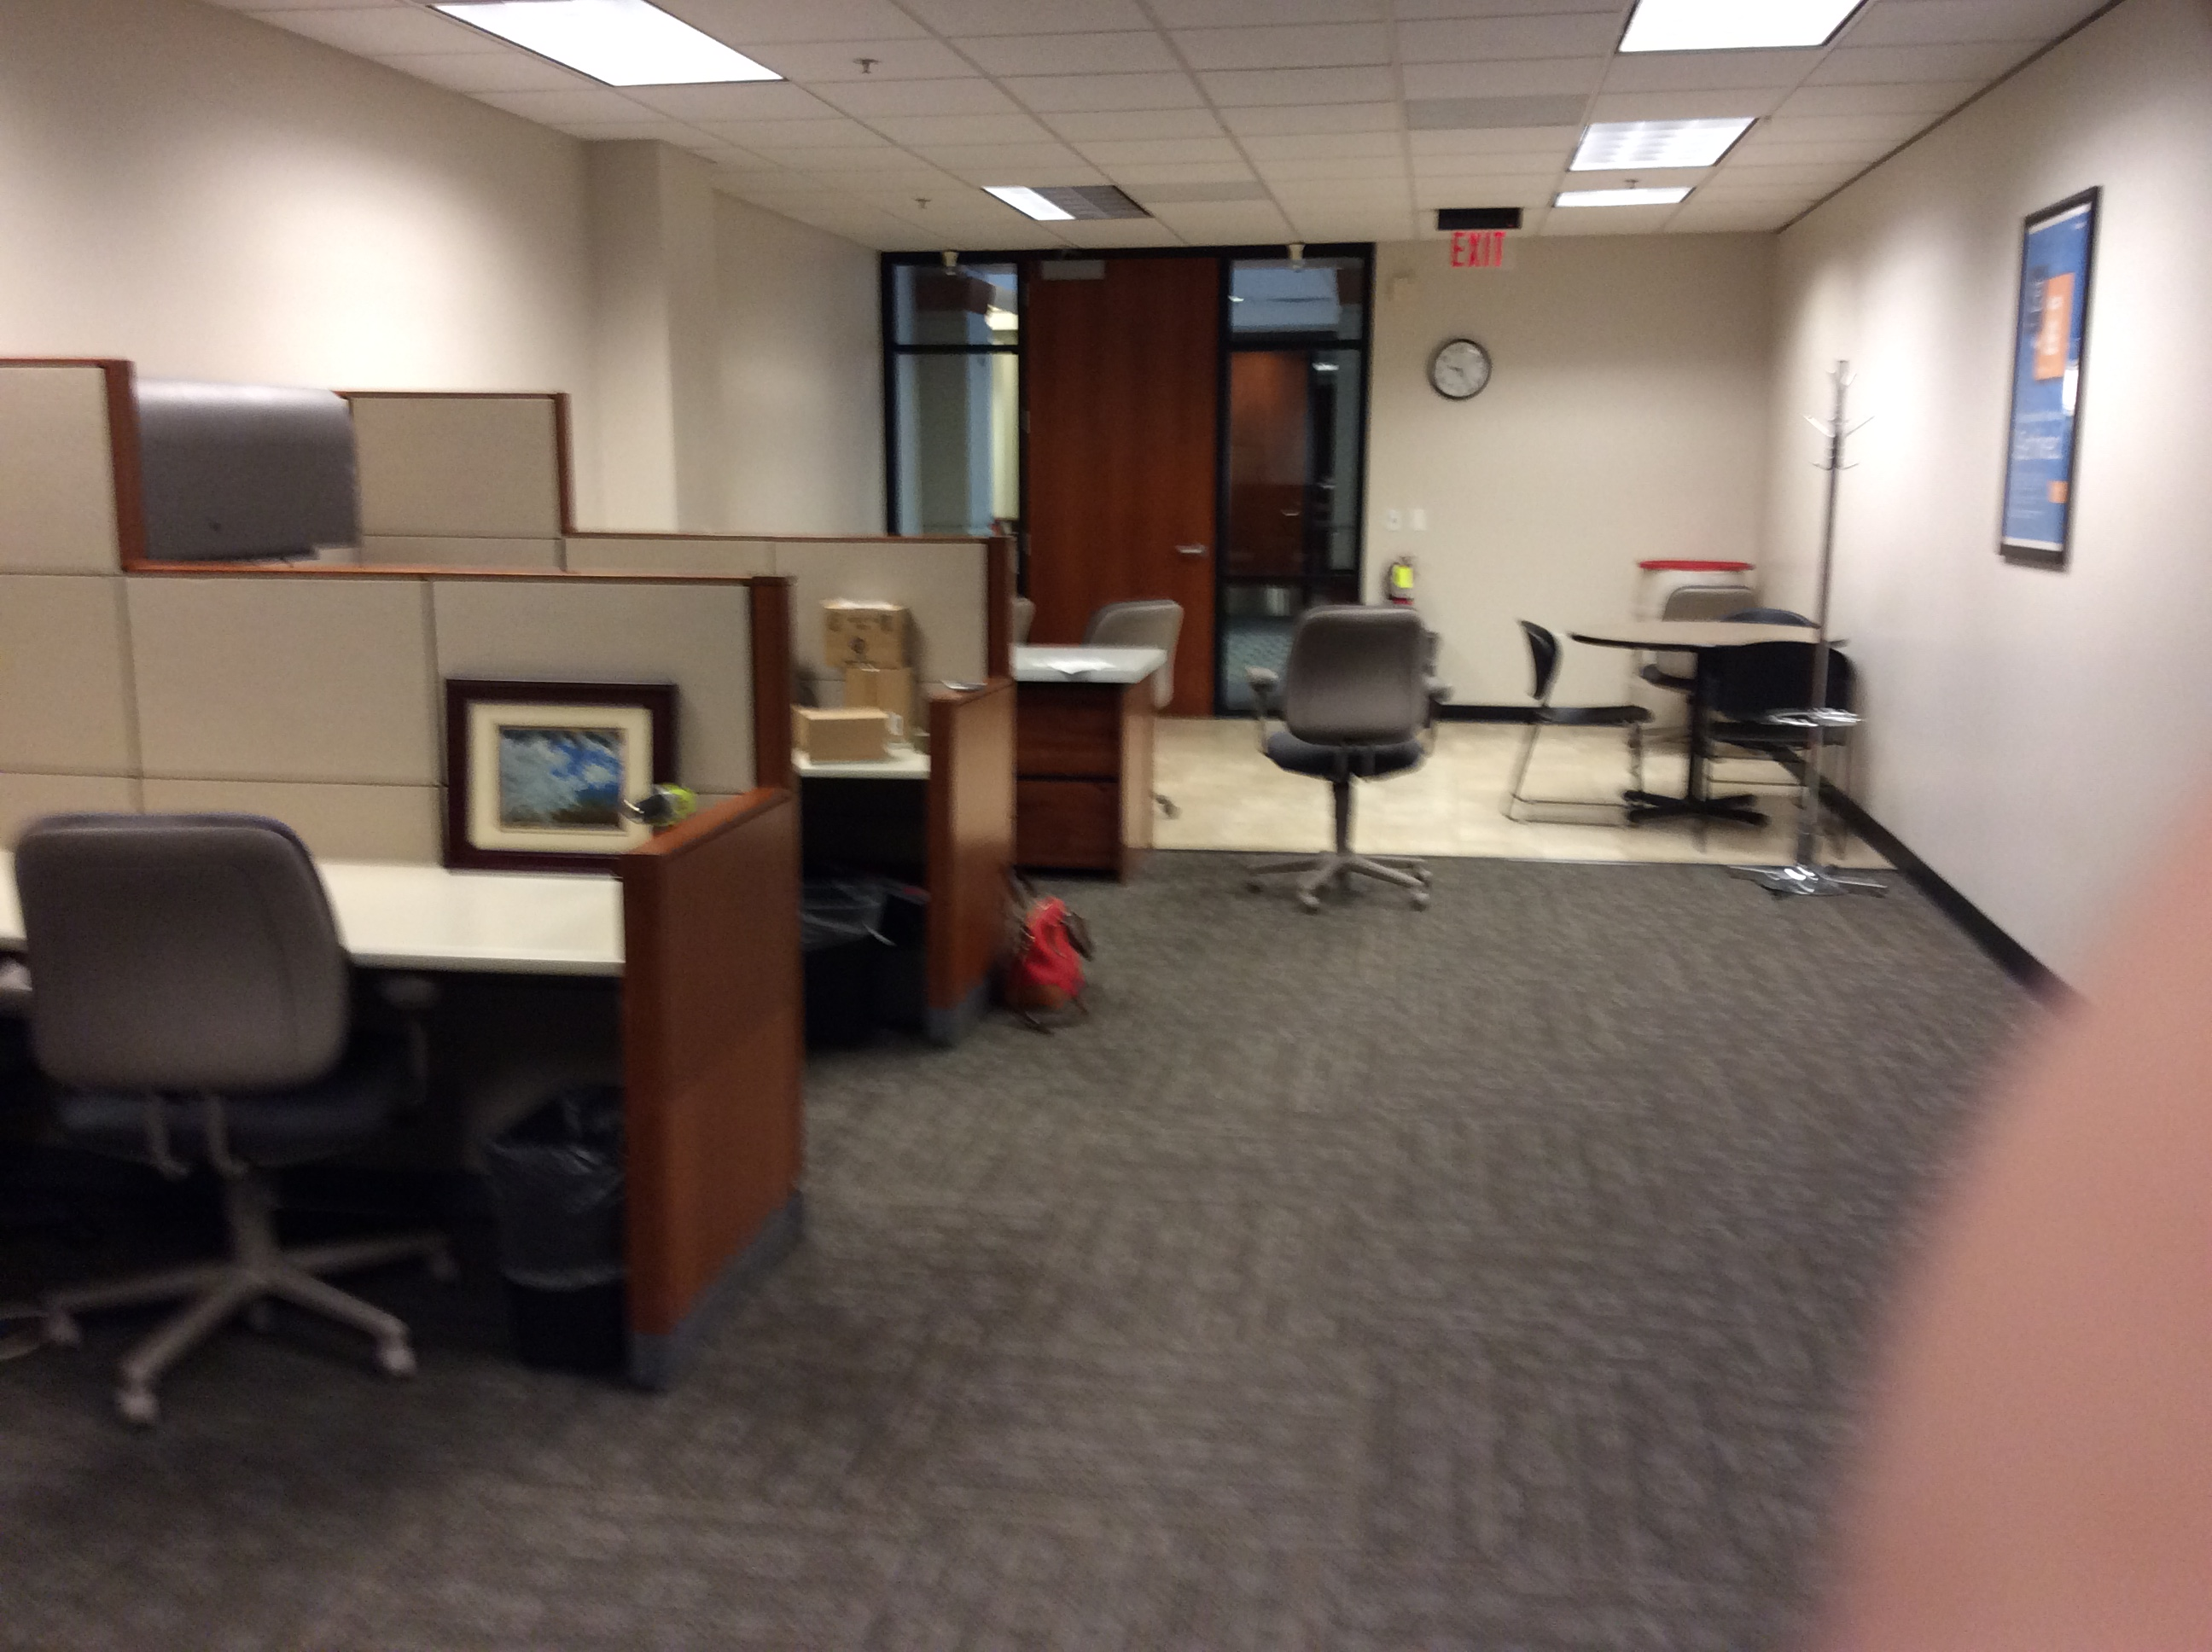 fice Furniture Removal and General fice Junk Removal